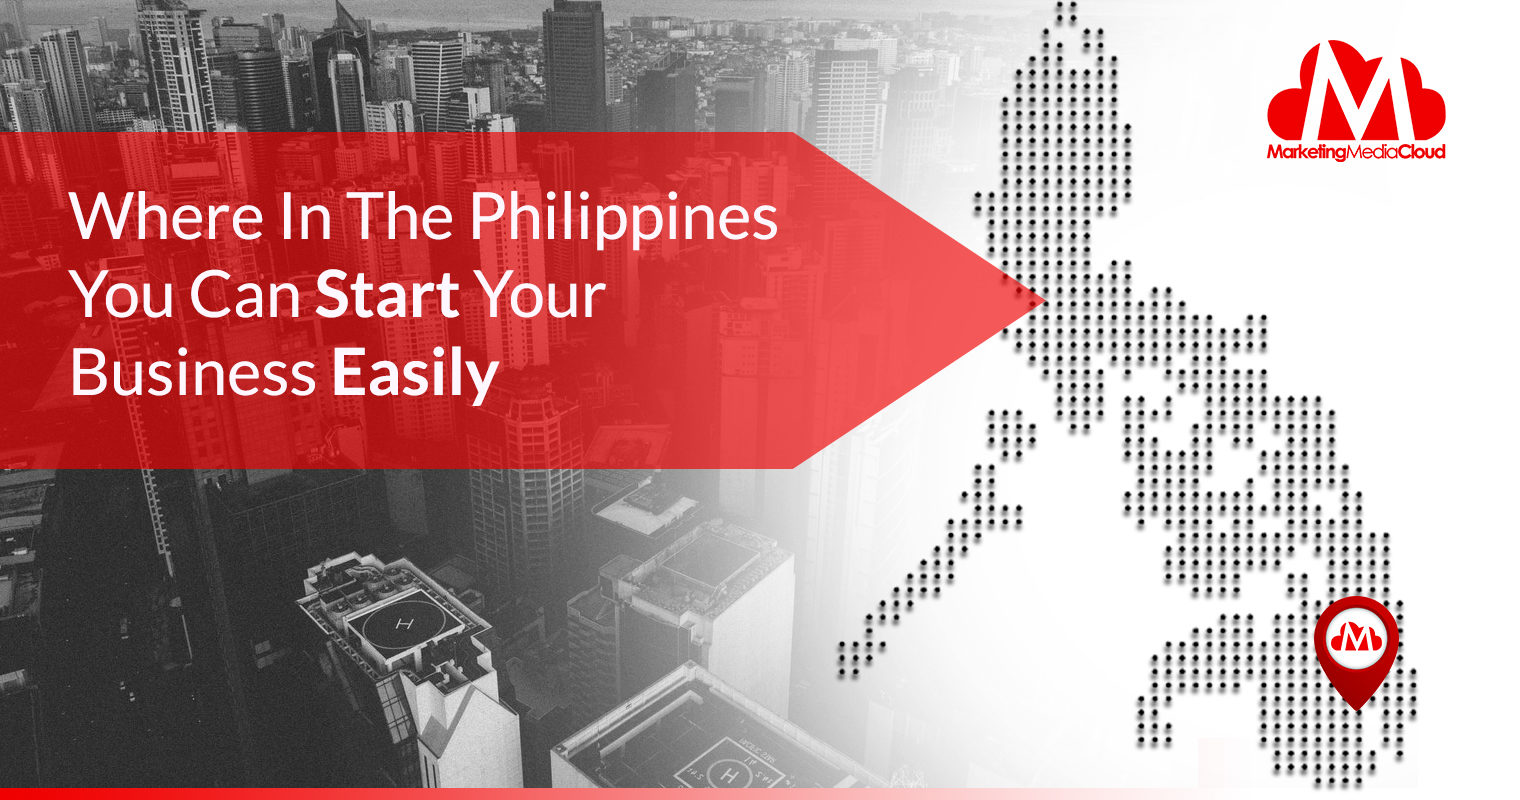 This Map Shows the 25 Philippine Cities You Can Easily Start a Business